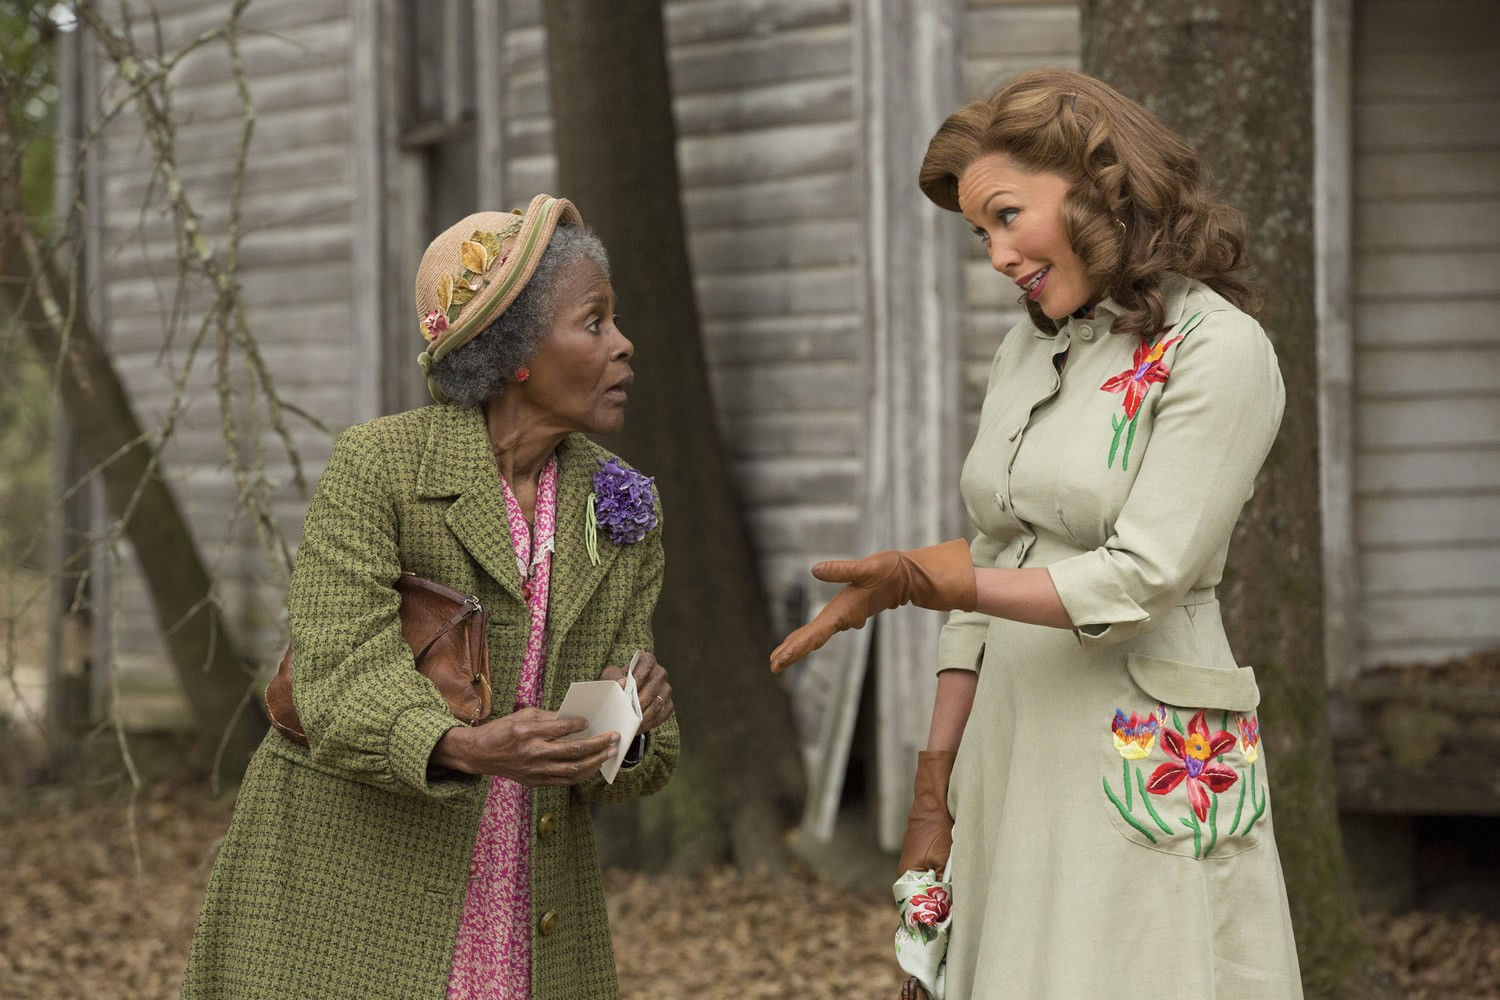 Cicely Tyson stars as Mrs. Watts and Vanessa Williams stars as Jessie Mae Watts in Lifetime's The Trip to Bountiful (2014). Photo credit by Bob Mahoney.